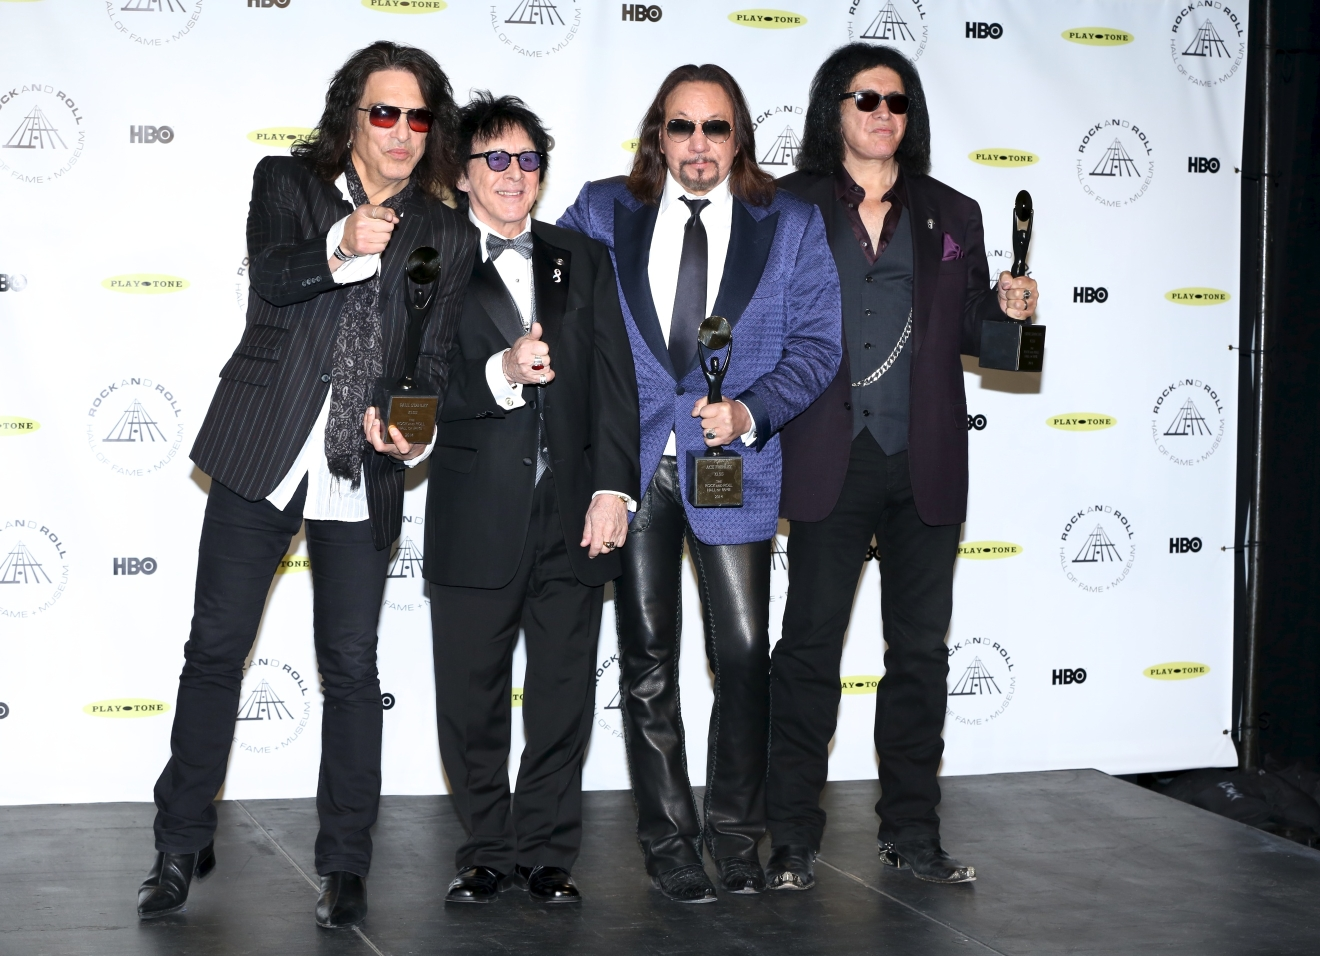 29th Annual Rock And Roll Hall Of Fame Induction Ceremony at Barclays Center of Brooklyn  Featuring: Paul Stanley,Peter Criss,Ace Frehley and Gene Simmons Where: New York, New York, United States When: 10 Apr 2014 Credit: Andres Otero/WENN.com